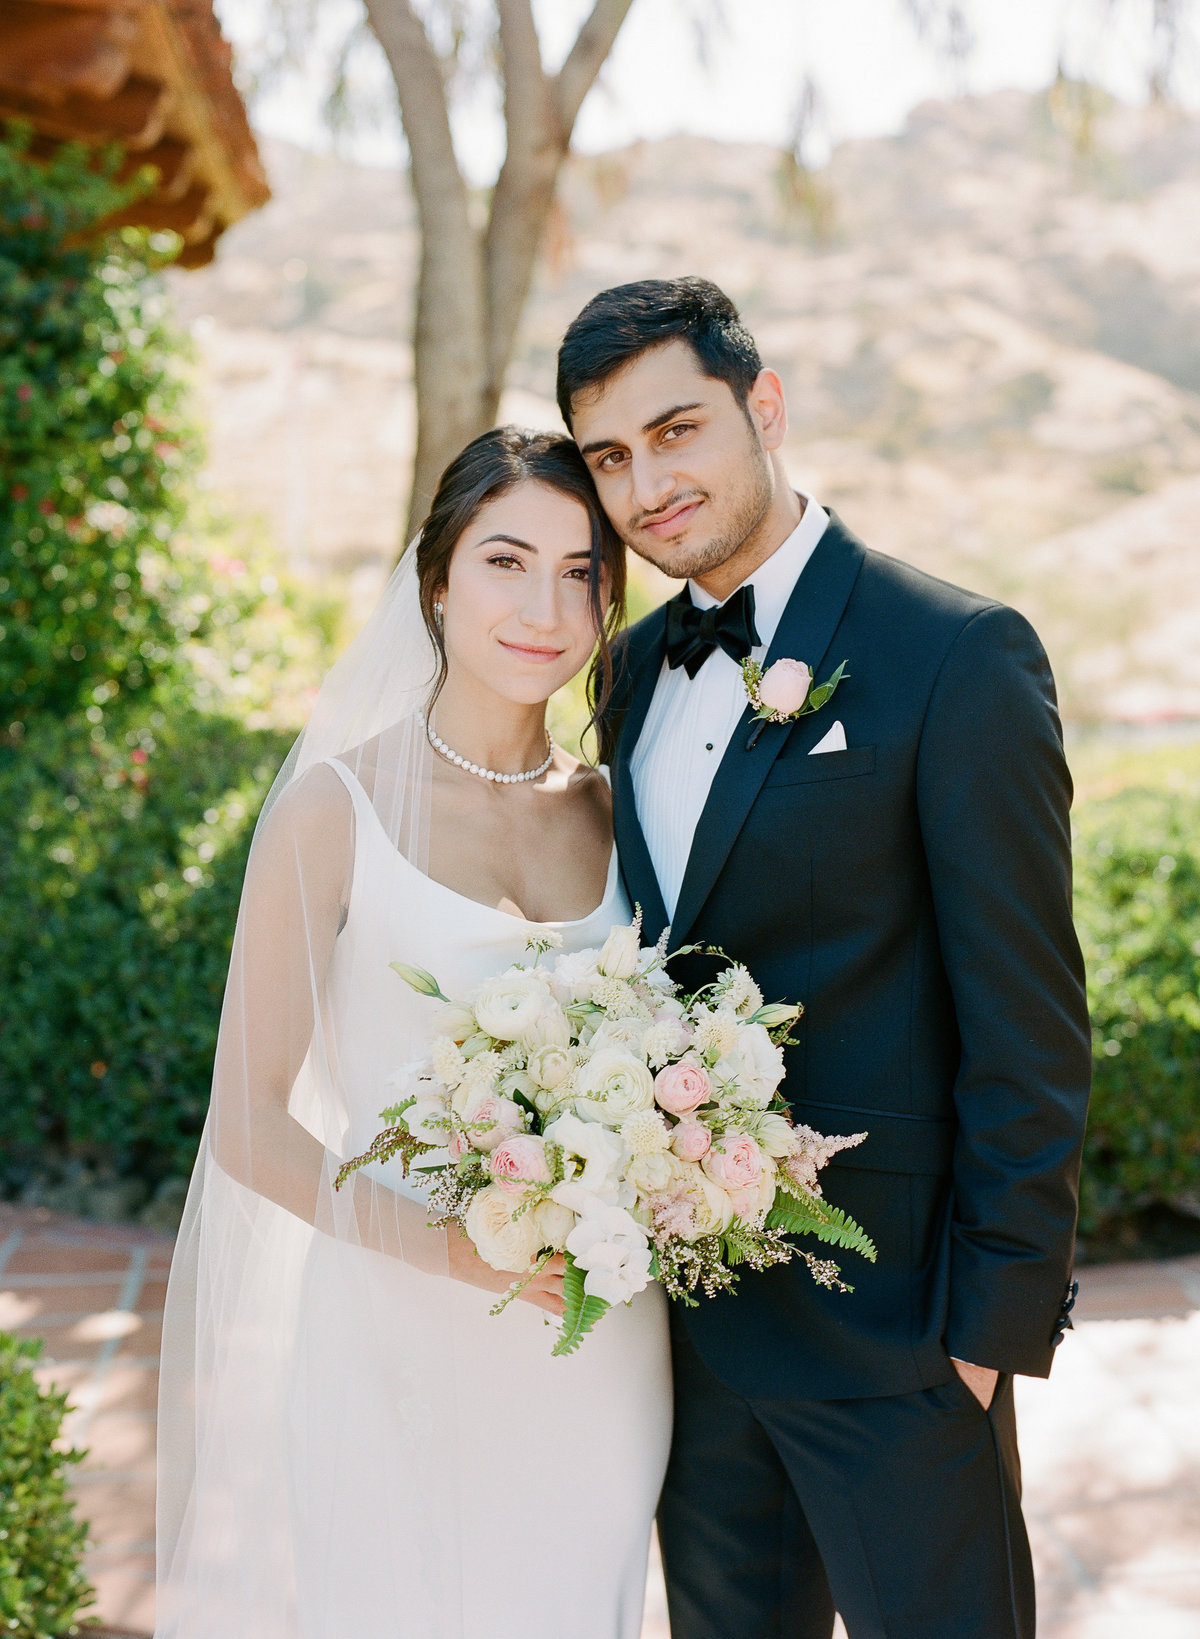 sasha-aneesh-wedding-bride-groom-armenian-44